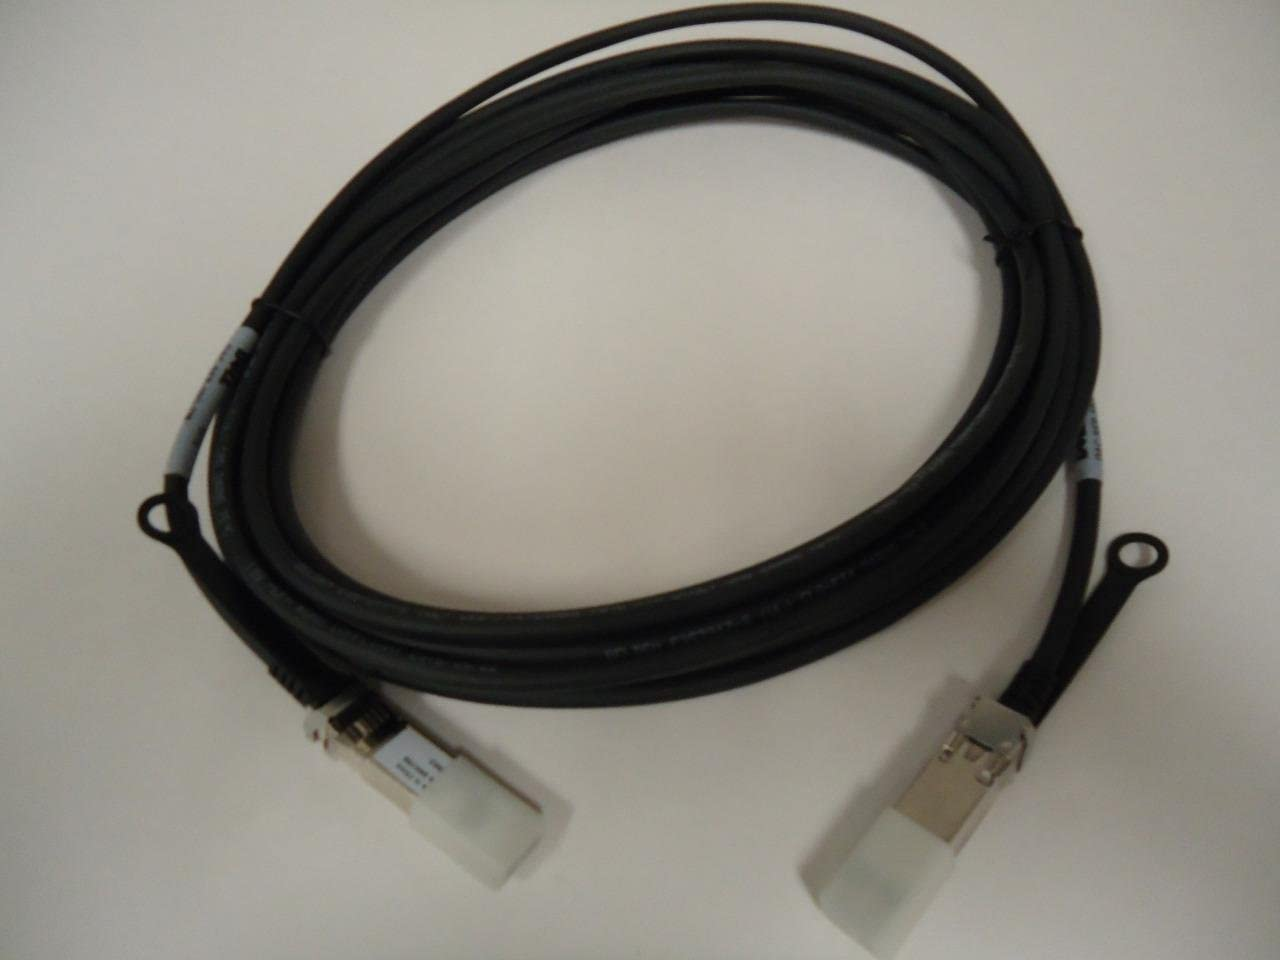 Dell MV799 Force10 7 Meter SFP+ to SFP+ Network 7M Cable